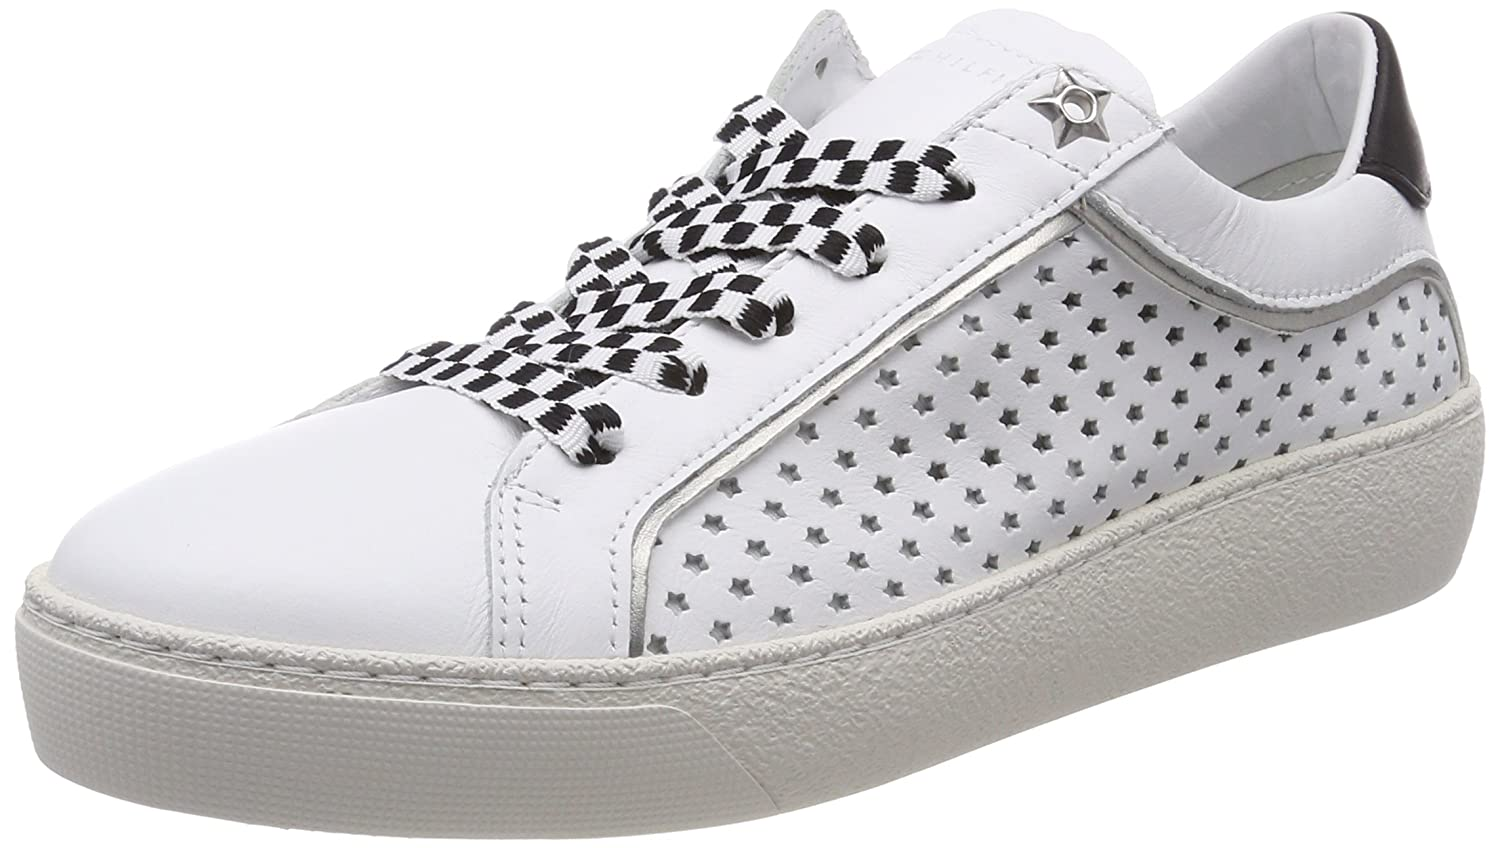 Tommy Hilfiger Iconic Star Sneaker, Zapatillas para Mujer